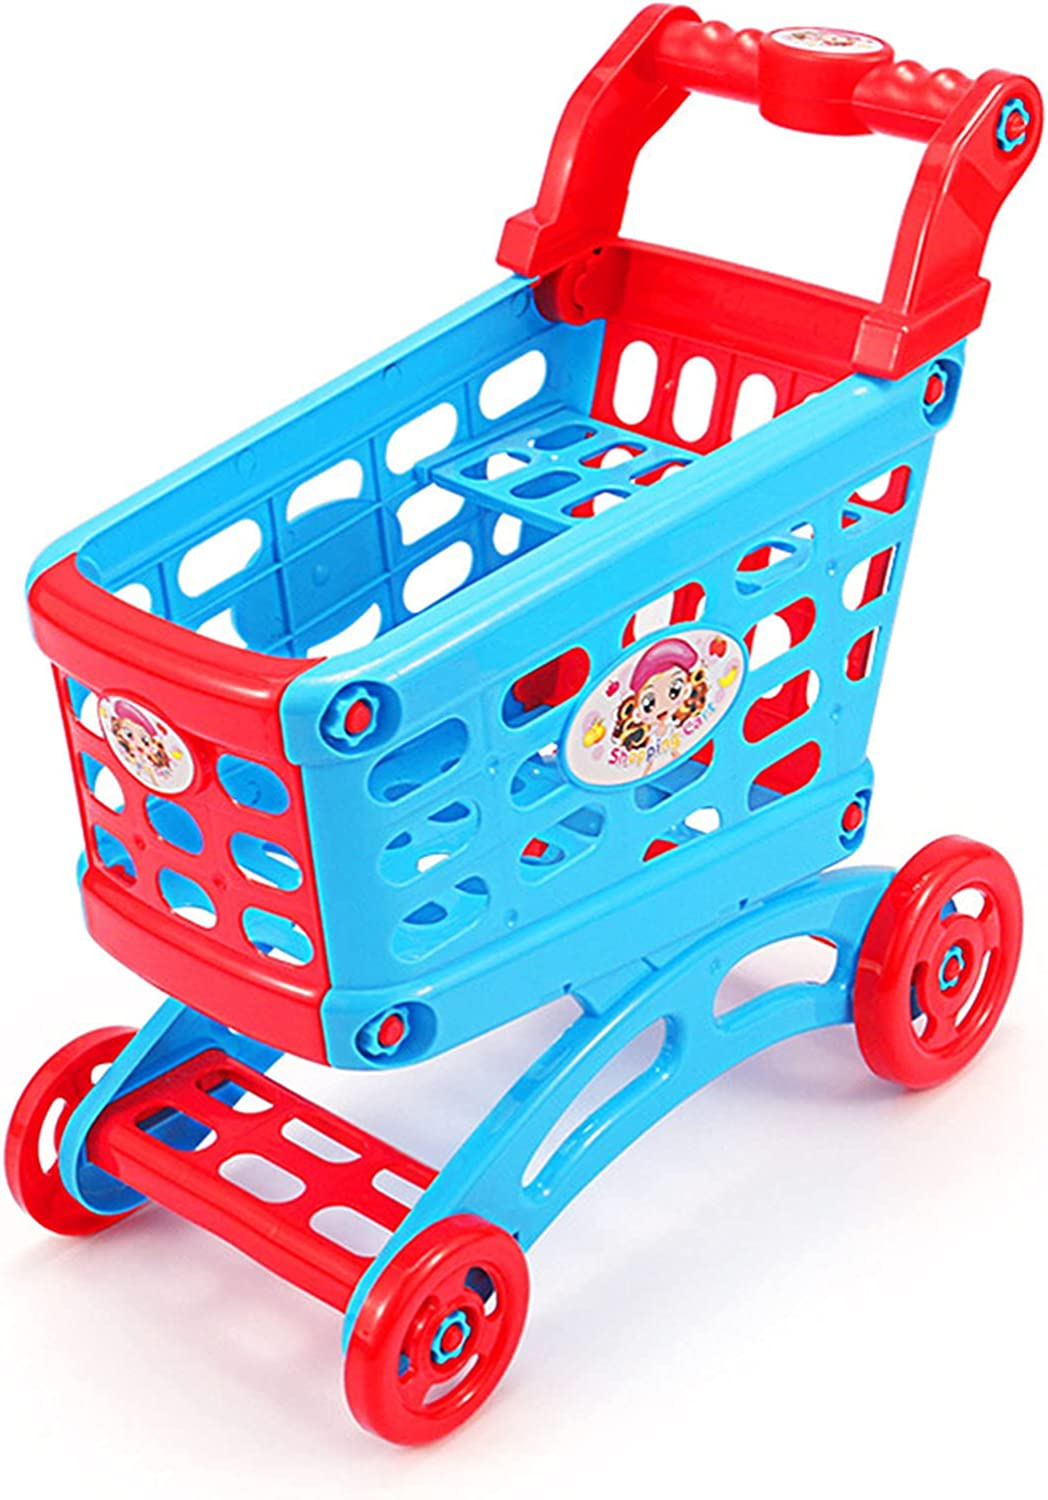 Shopping Cart Toy, Simulation Toy Trolley Boys and Girls Play Ho